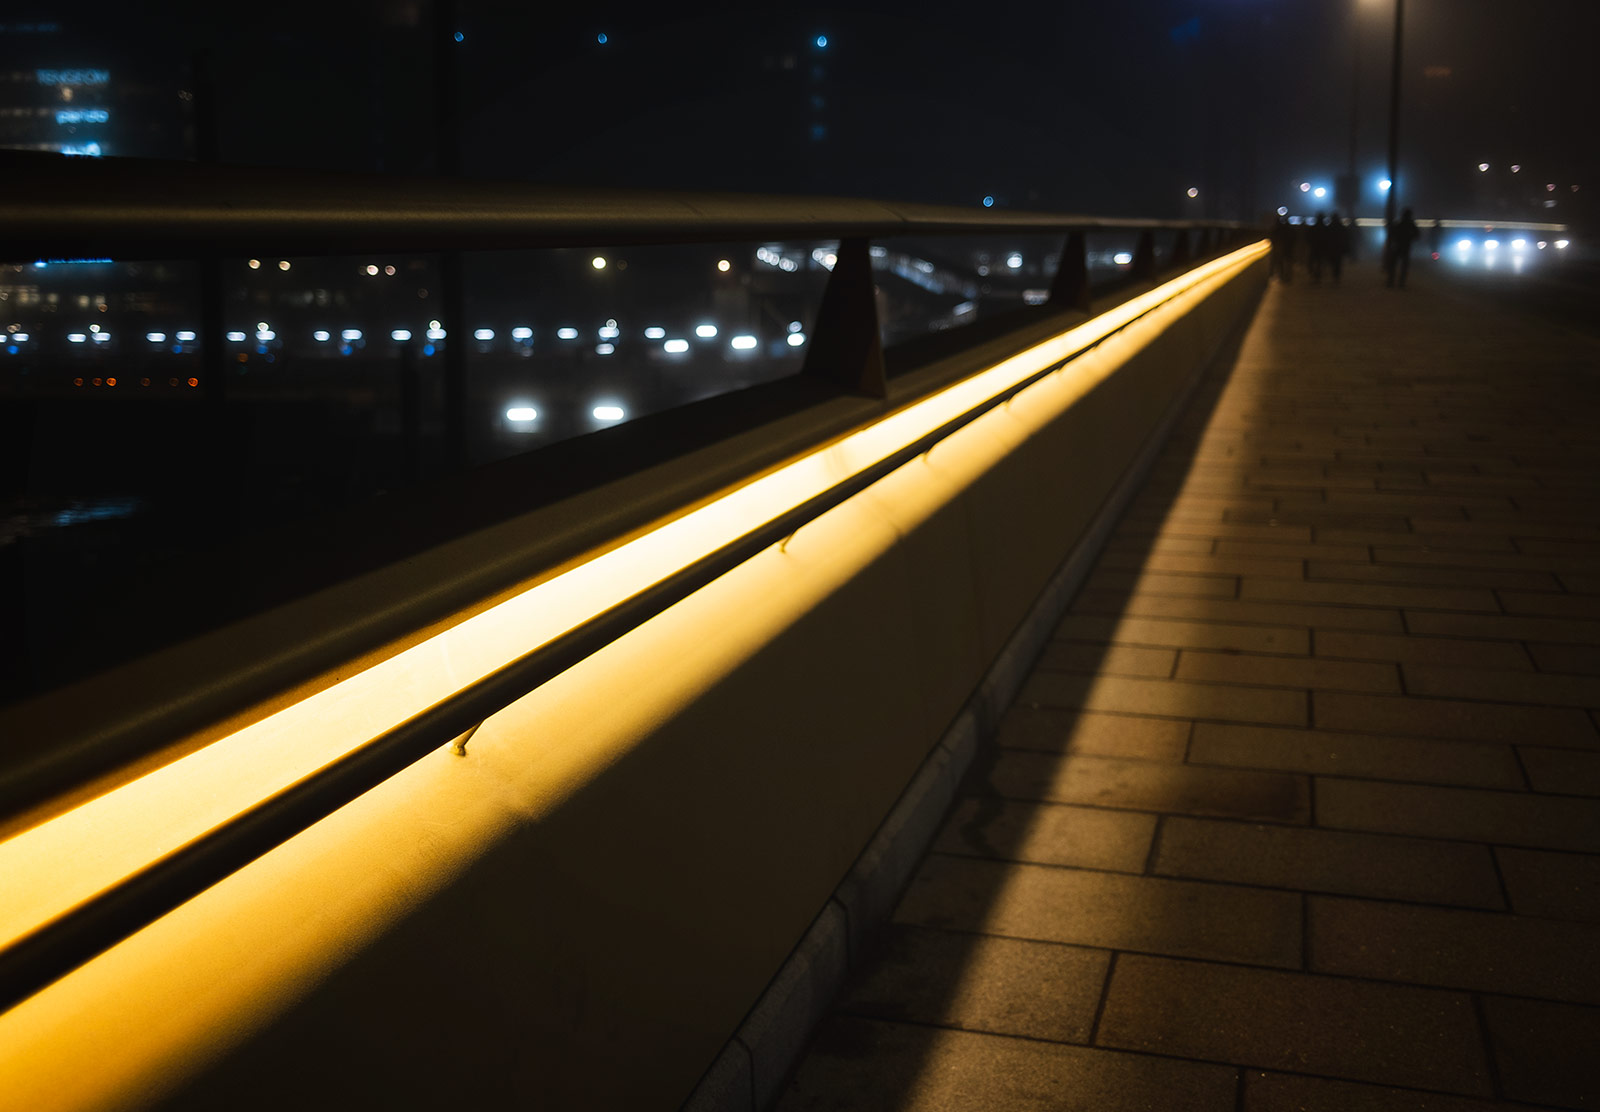 Strip of yellow lights